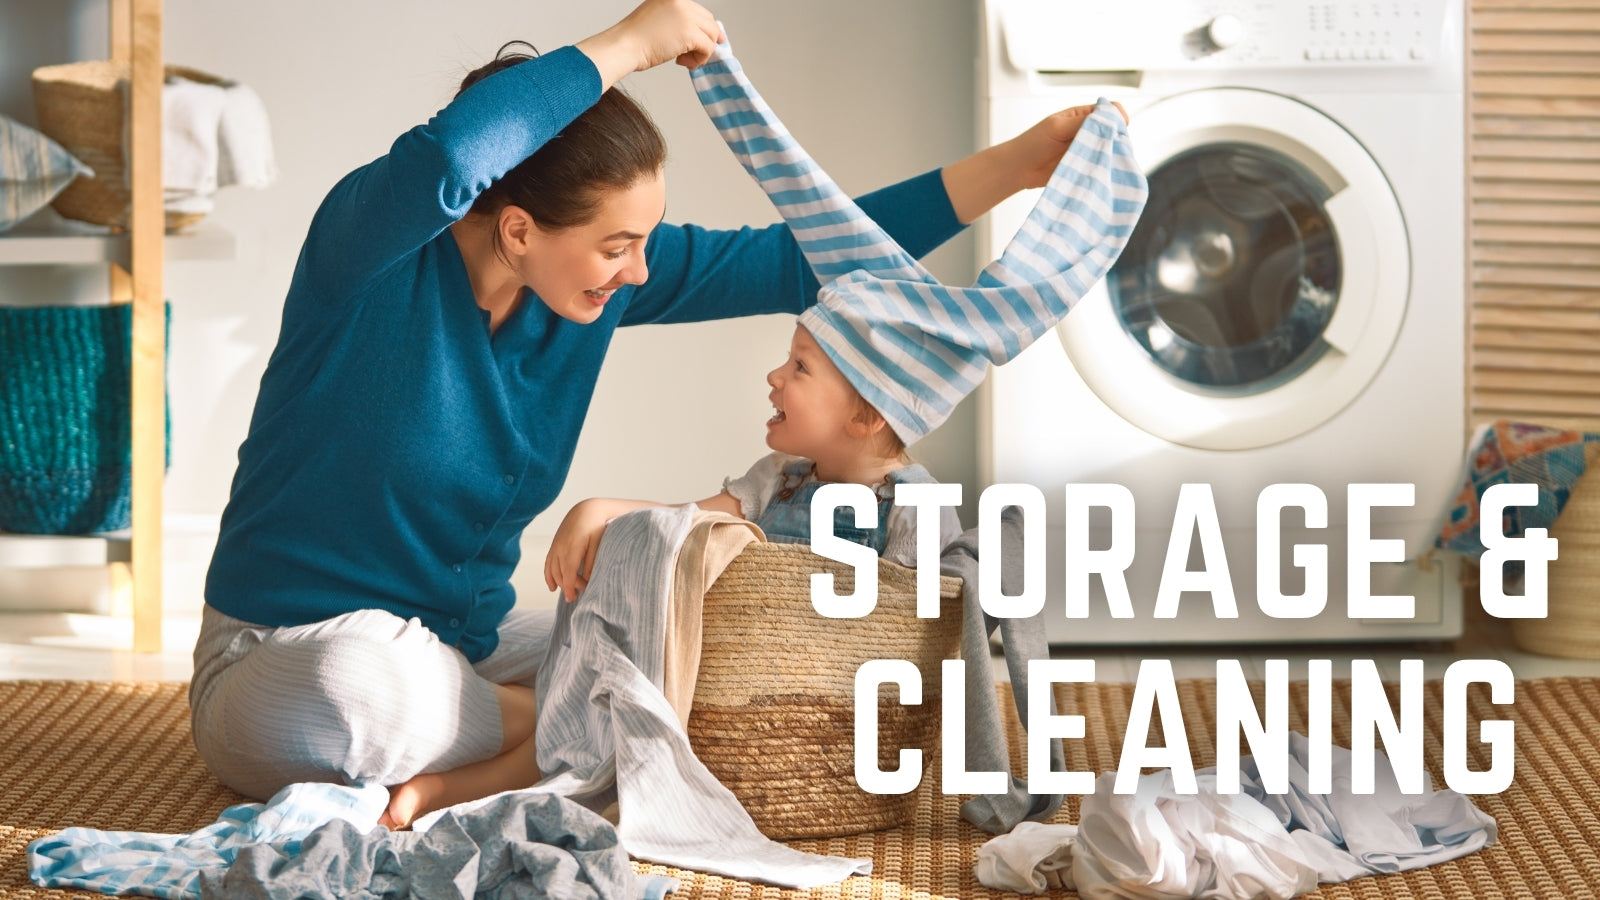 Storage and Cleaning Collection. Homeware. Home Store. Storage facilities